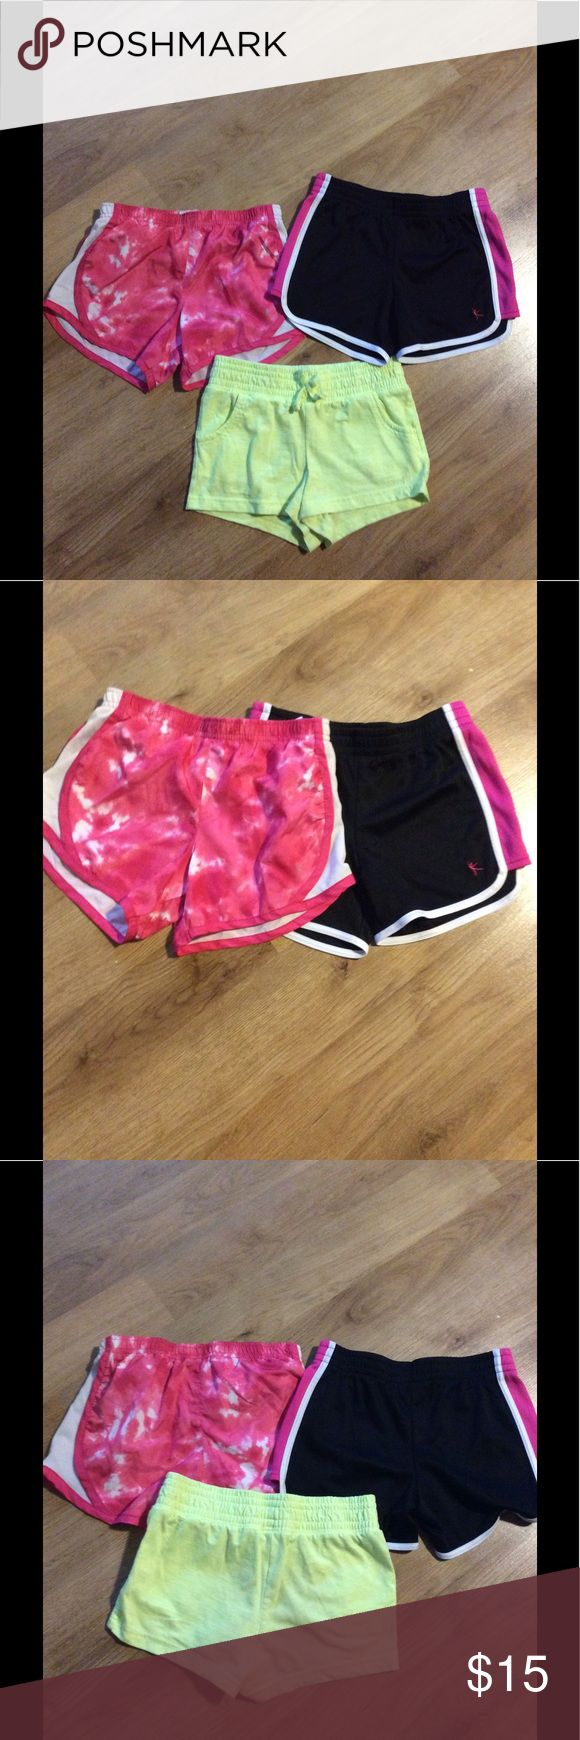 Girls shorts size 6-6x This listing is for all three pairs of shorts ..the top two pink and black ones are danskin now which are 100 percent polyester and the lime green shorts are 60 percent cotton and are 40 percent polyester and are Circo brand..they are all sizes 6-6x Danskin Now Bottoms Shorts